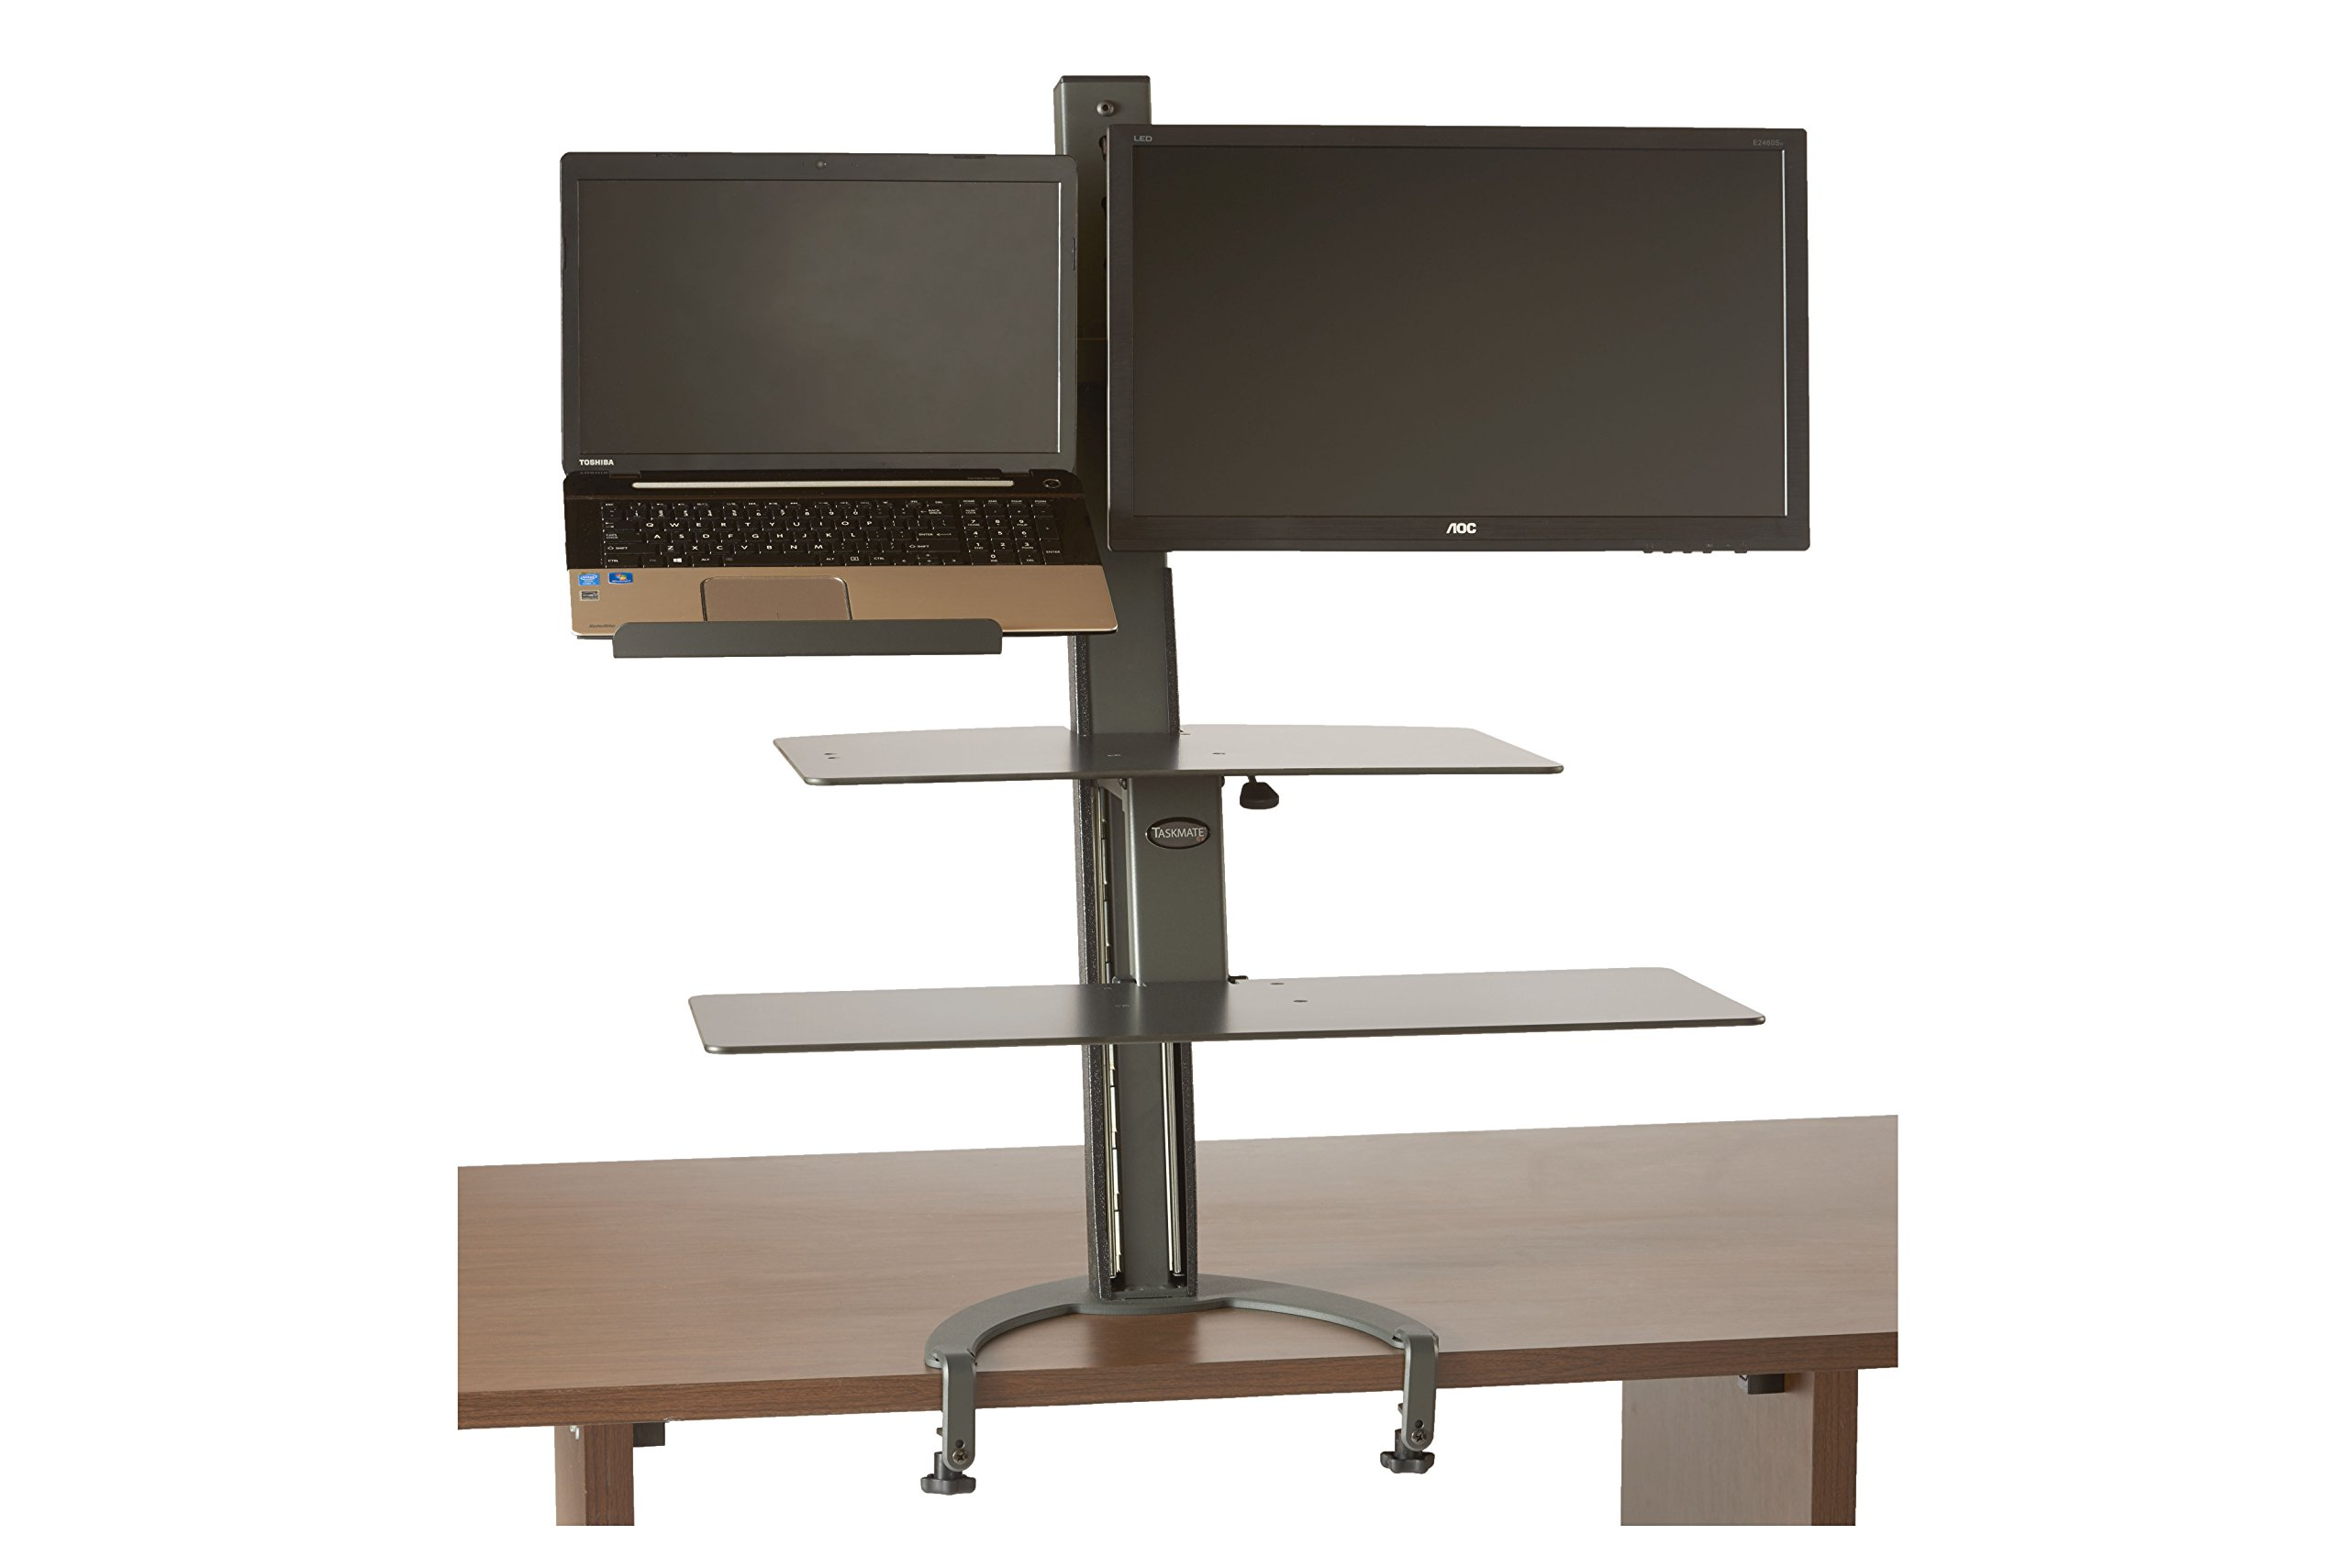 HealthPostures TaskMate Go Laptop With Large Work Surface and Large Keyboard Tray 6362 Adjustable Assisted Lift Standing Desk